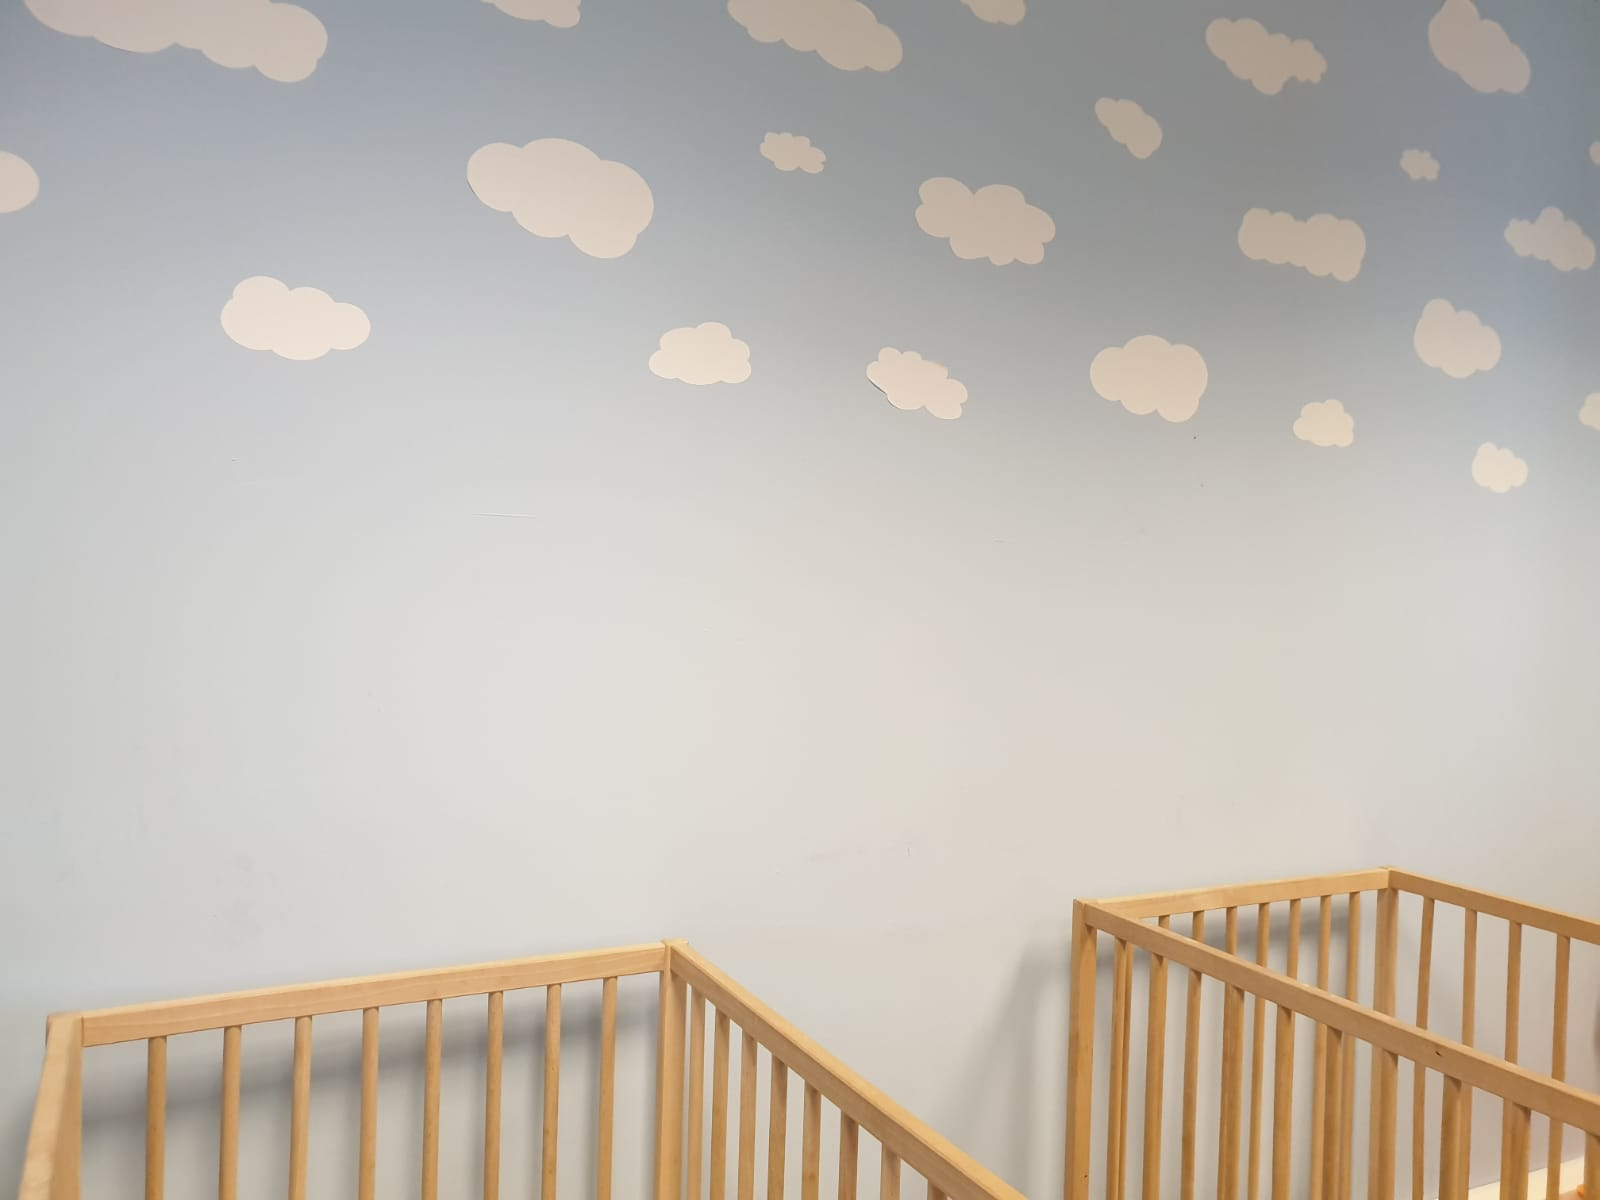 Baby sleep room with clouds